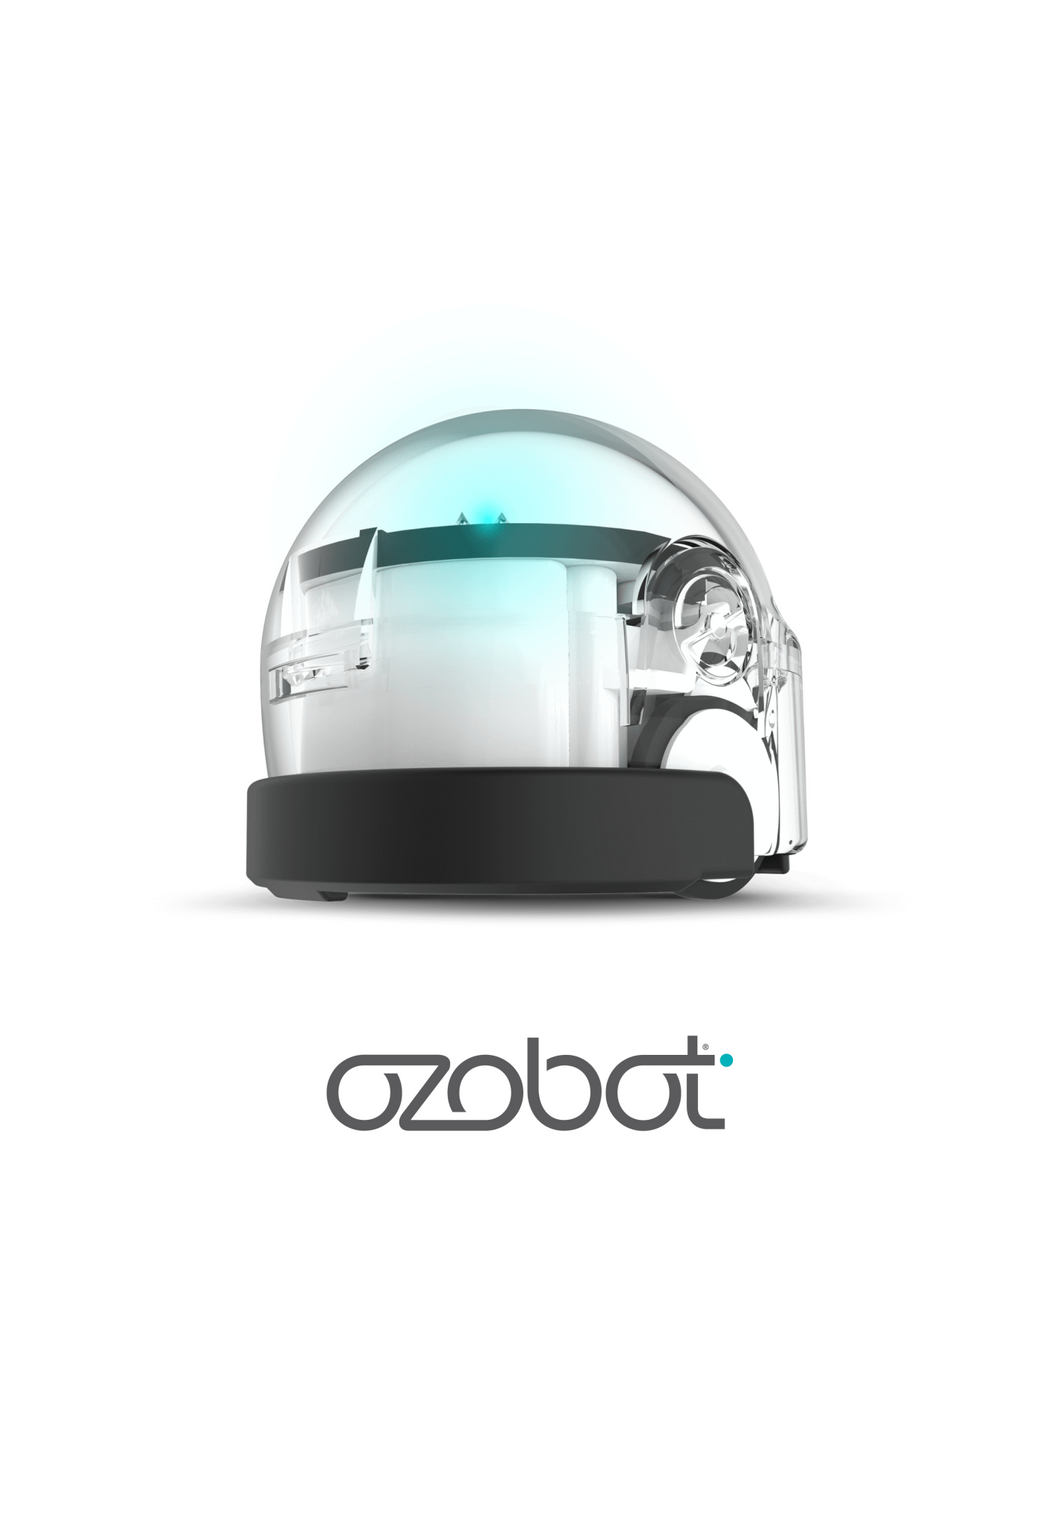 Ozobot Bit | The Line Following Robot